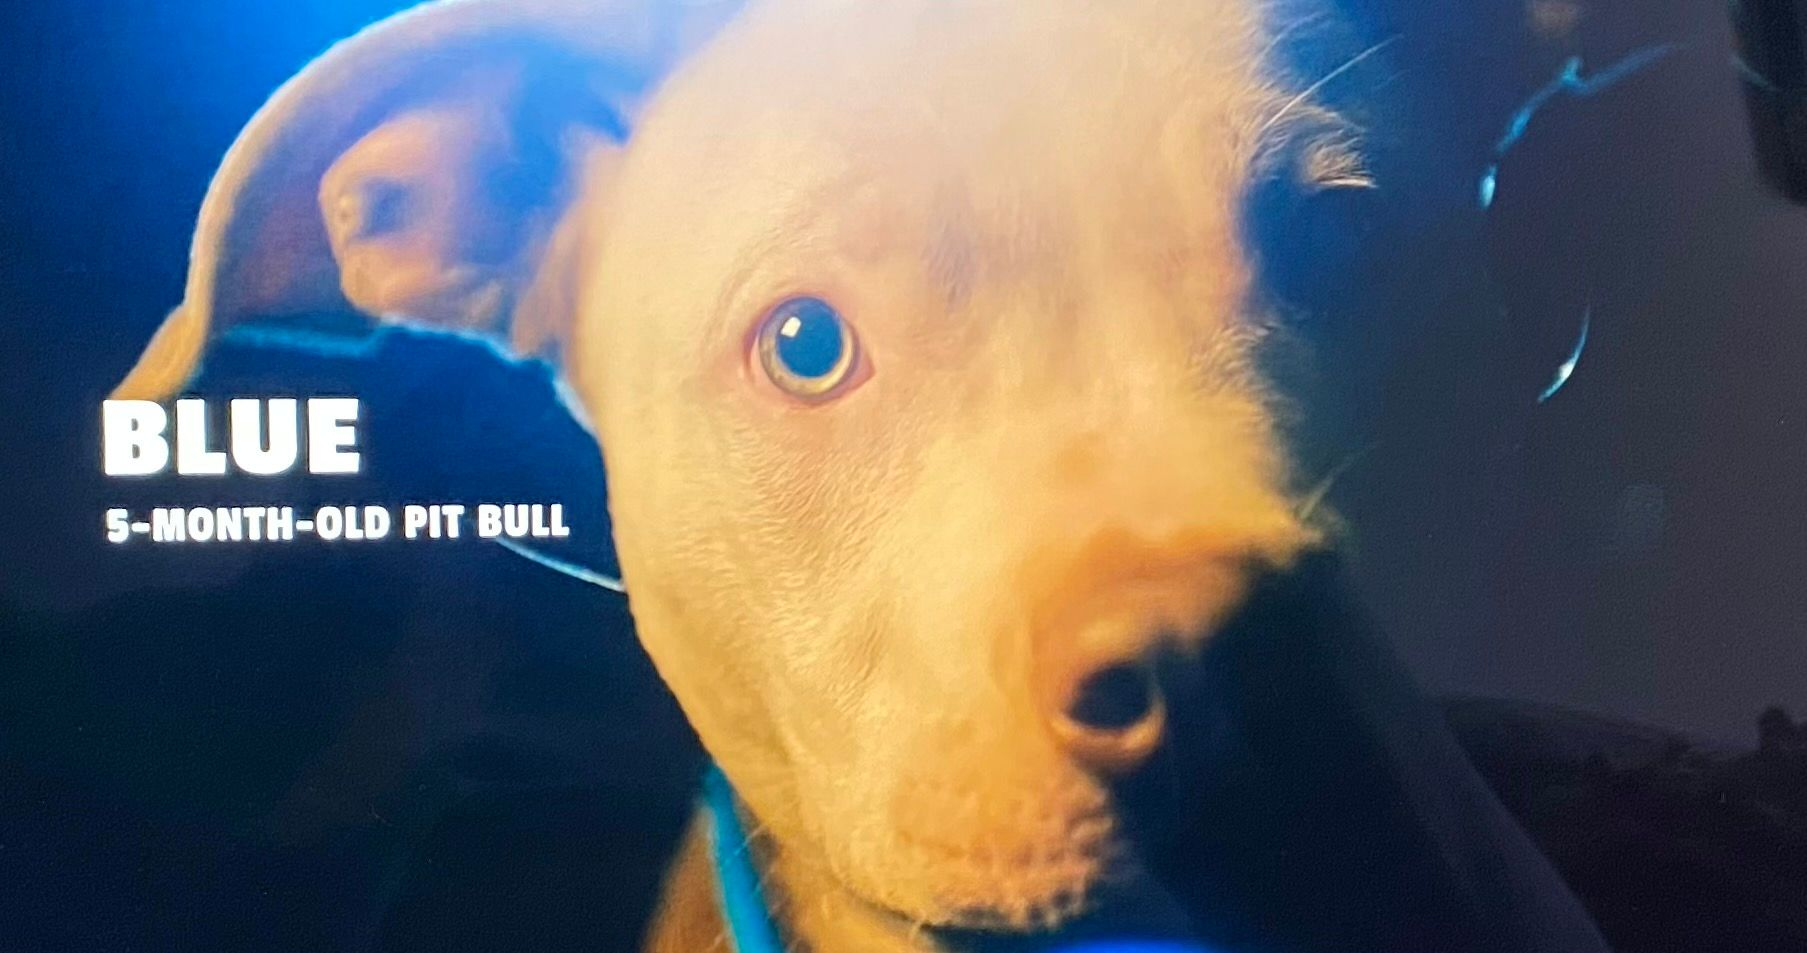 Canine Intervention: Ray & Johnetta's Dog Blue's Breed, Age, Personality & Tricks